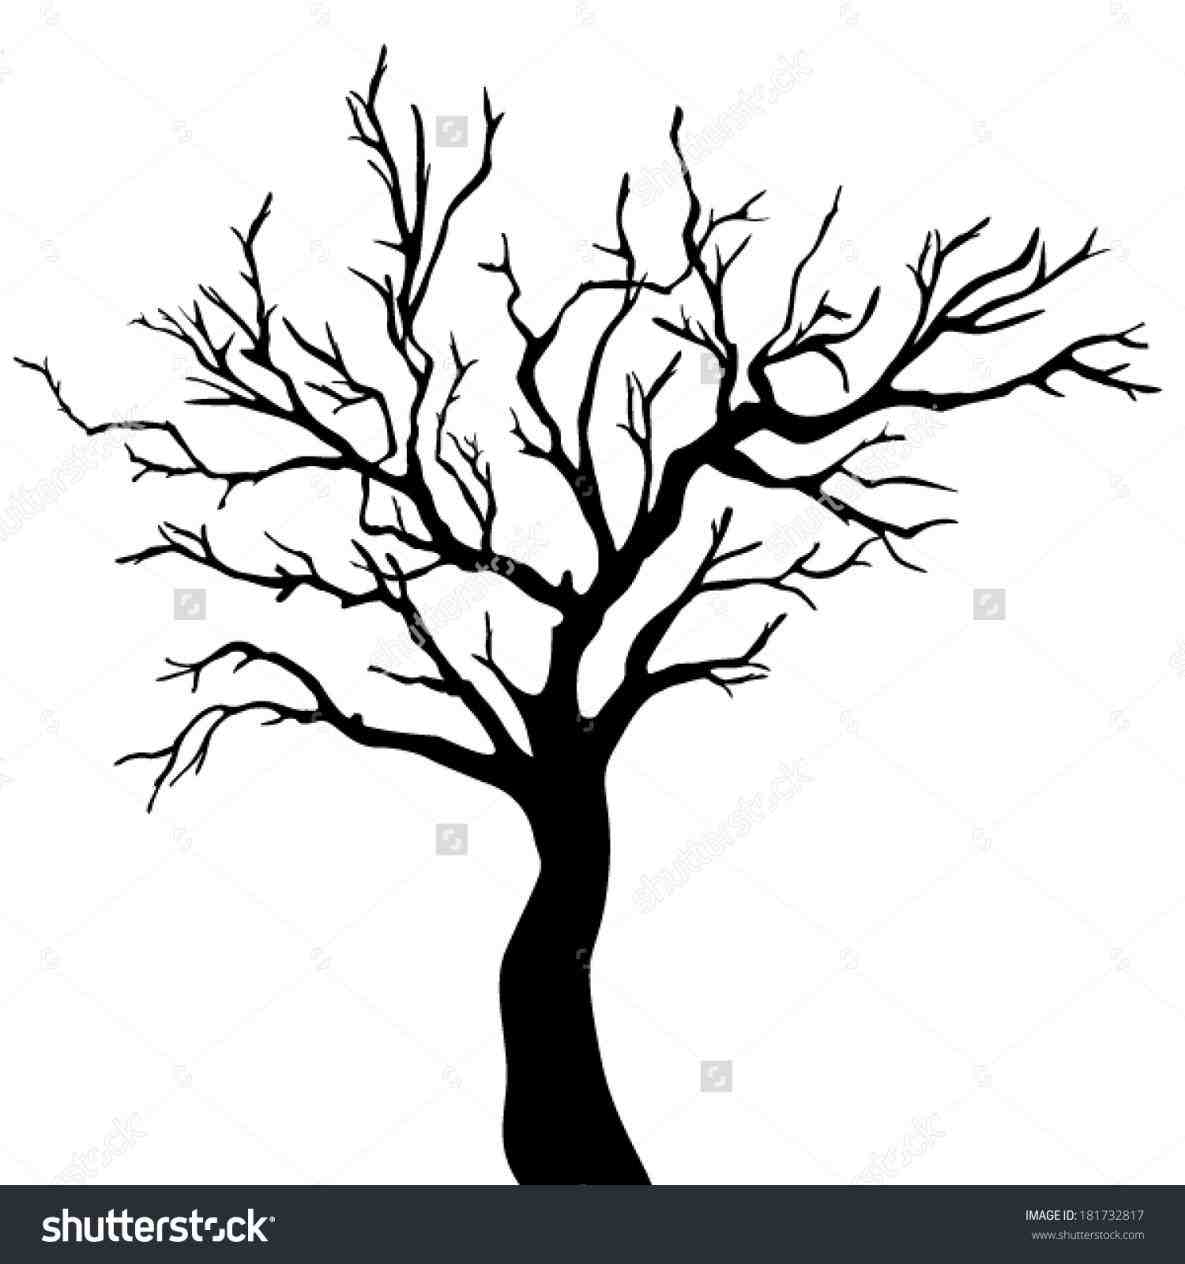 1185x1264 Clipart Tree Drawing Collection